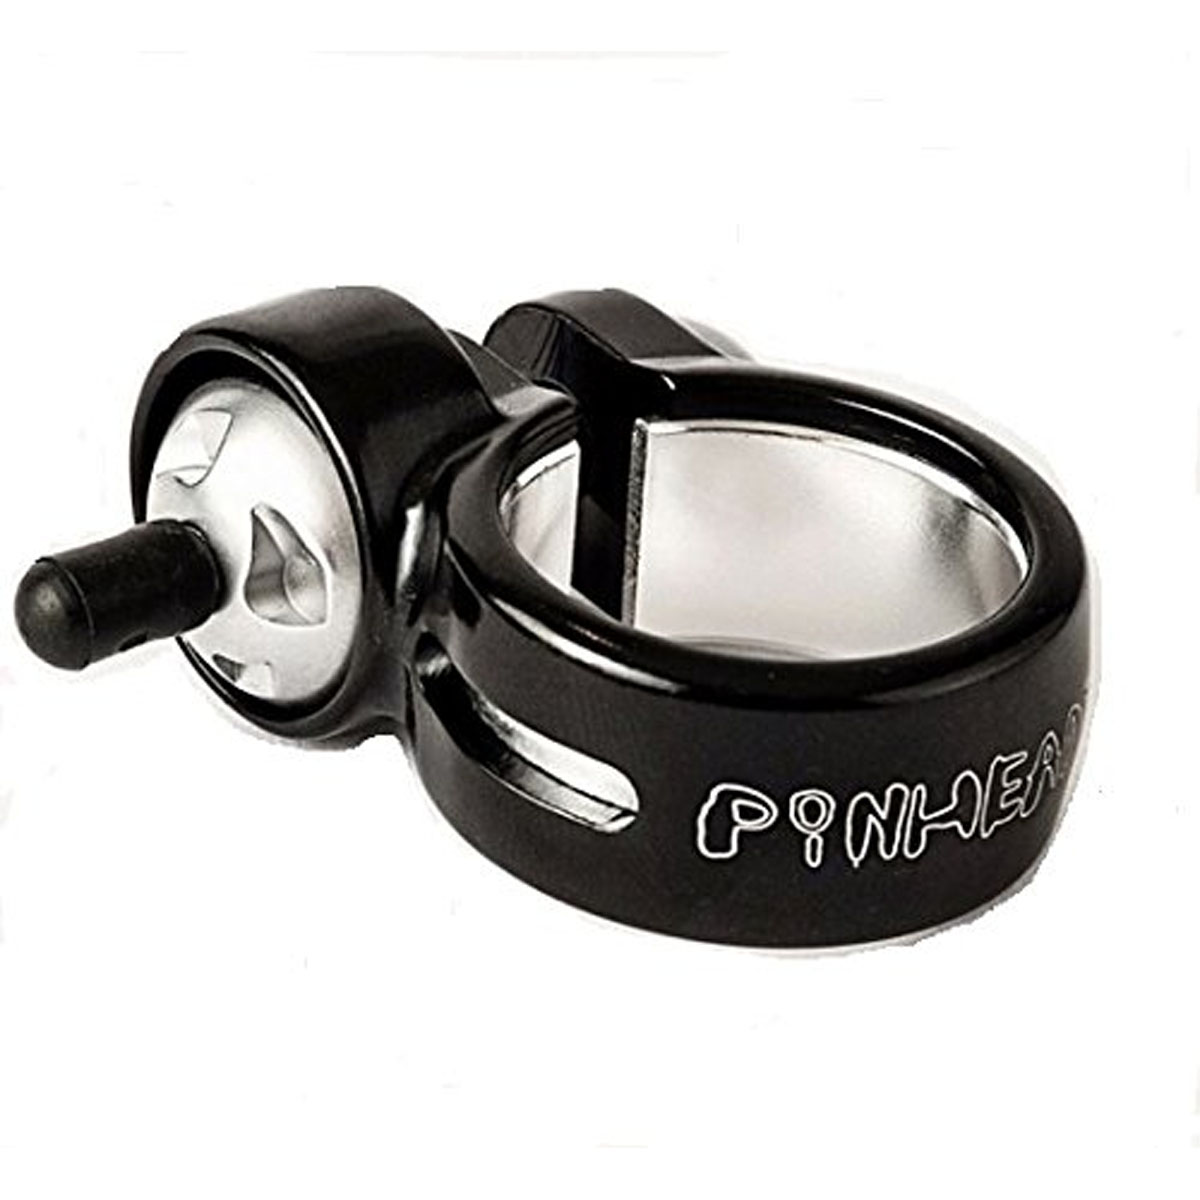 Pinhead Bicycle Saddle Lock - 124